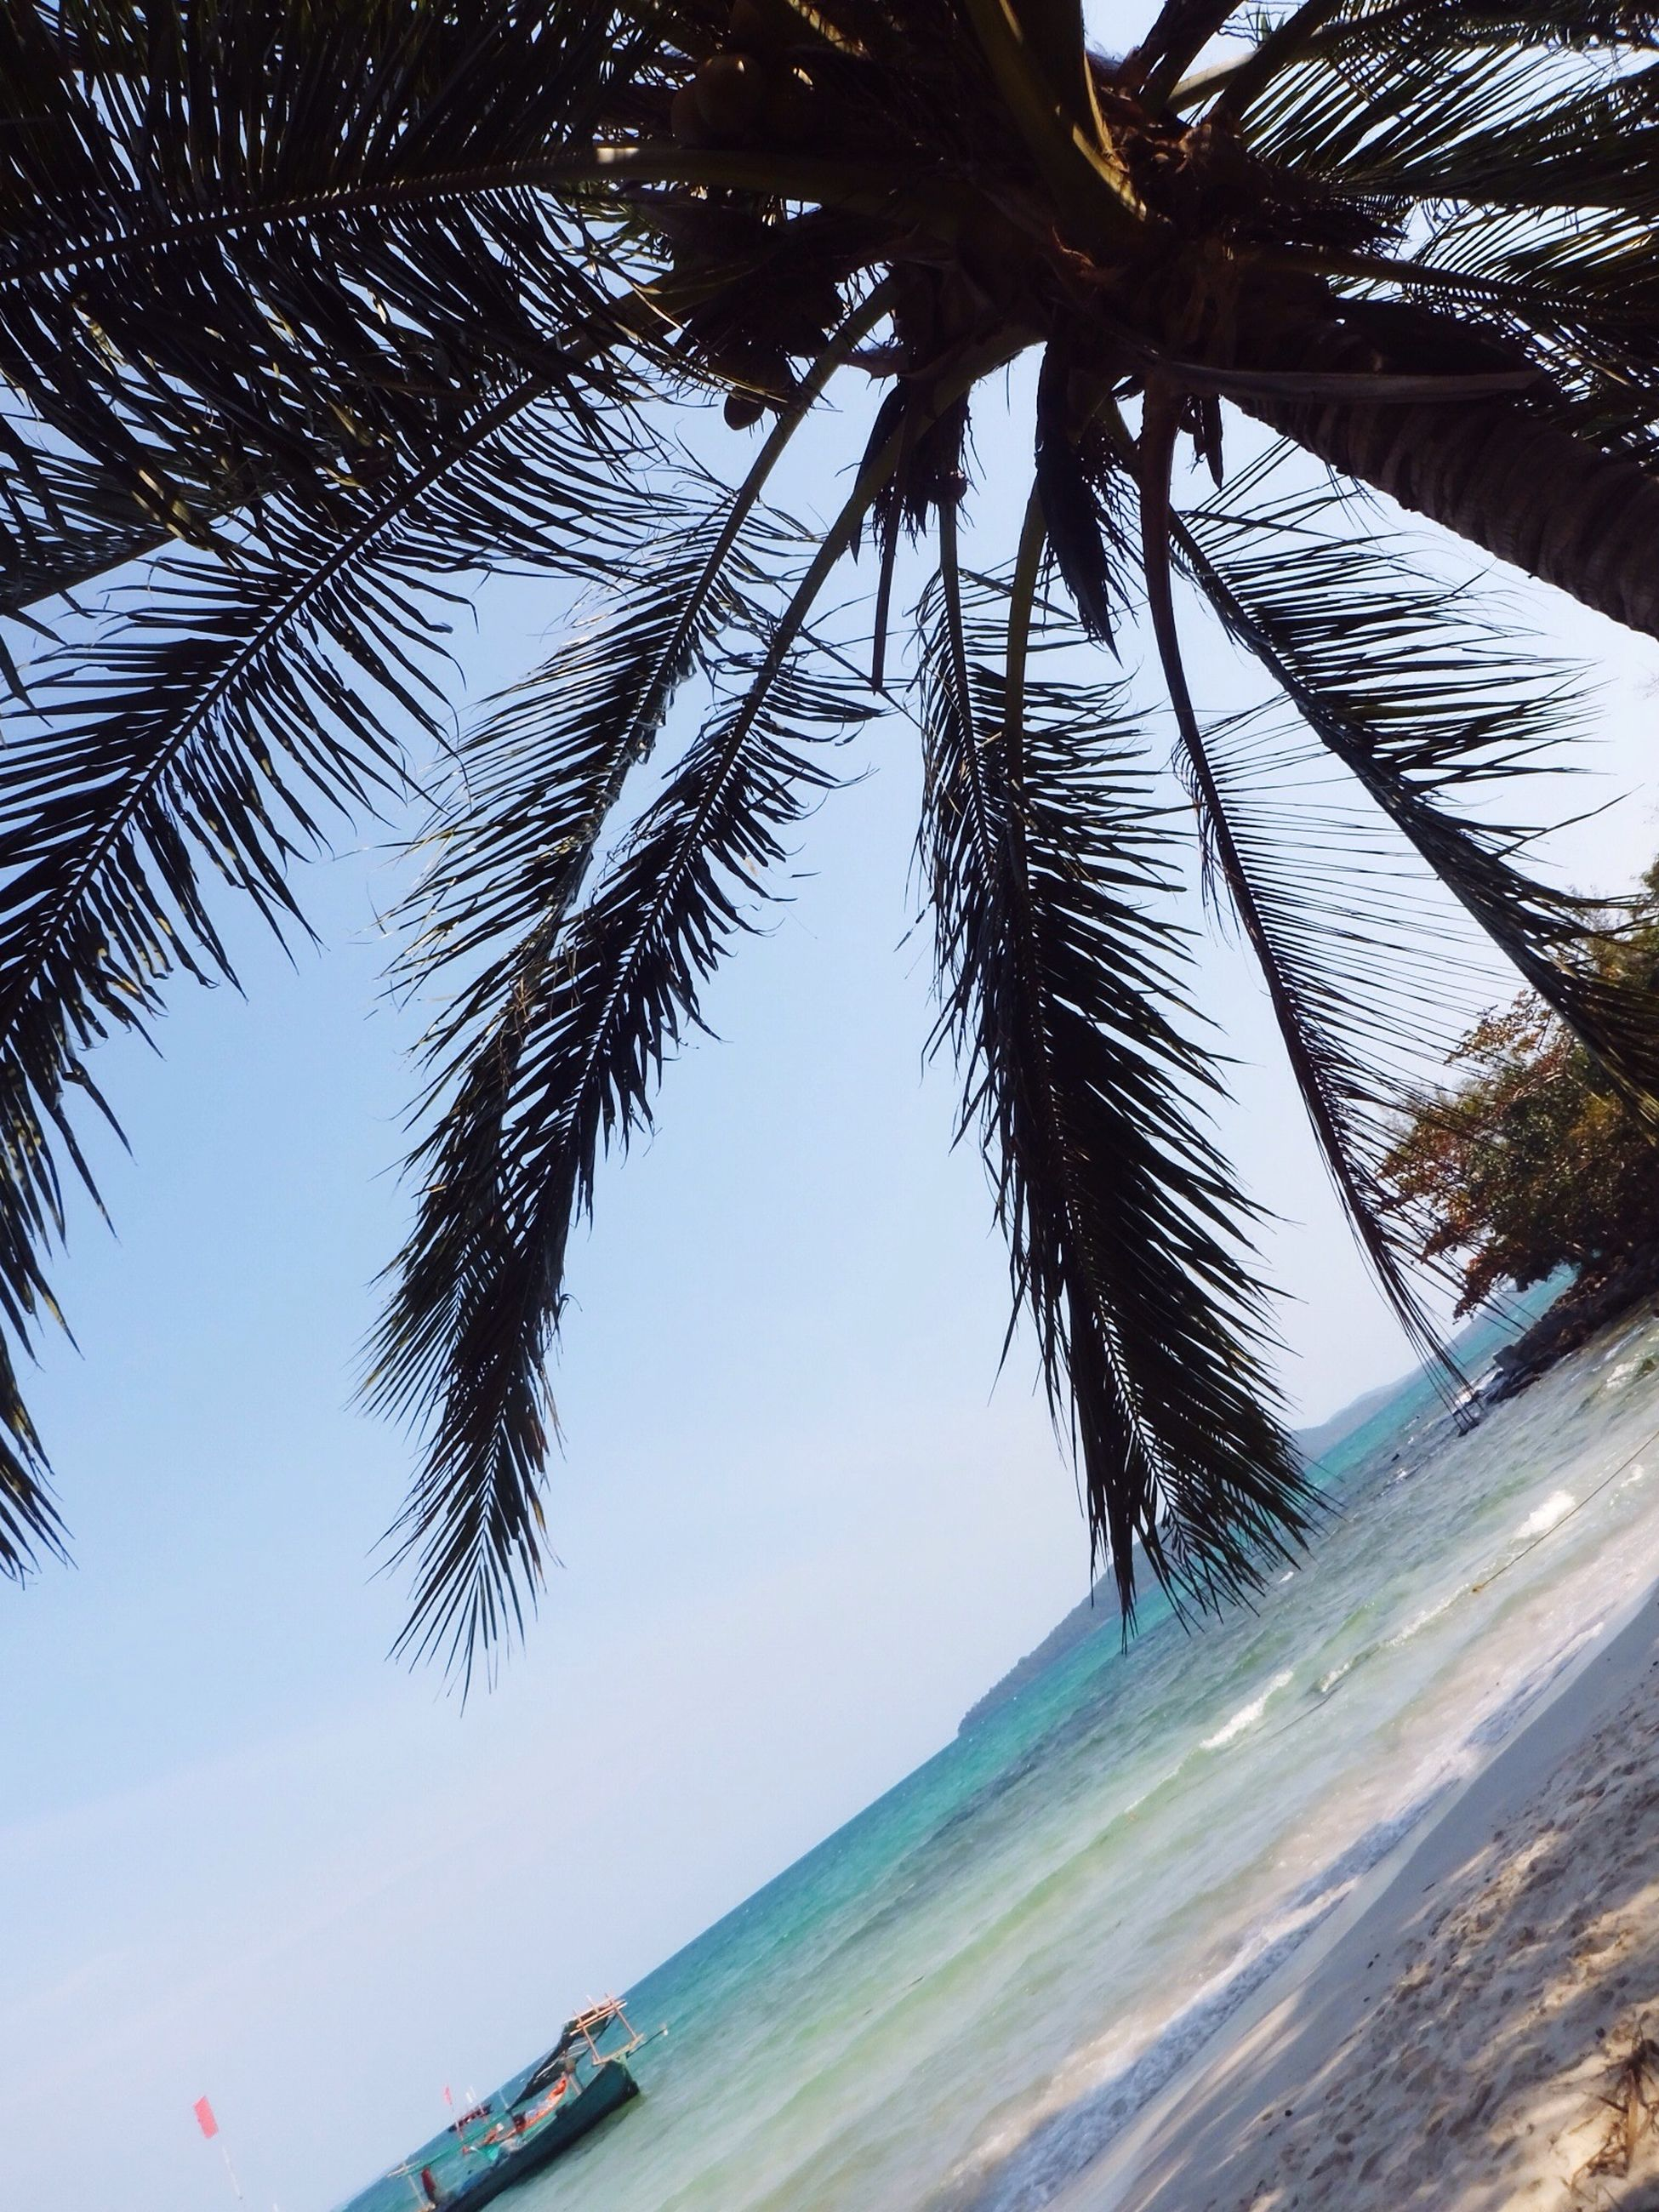 palm tree, tree, tranquility, low angle view, nature, sea, beach, growth, branch, beauty in nature, tree trunk, tranquil scene, sky, scenics, clear sky, coconut palm tree, sunlight, day, outdoors, water